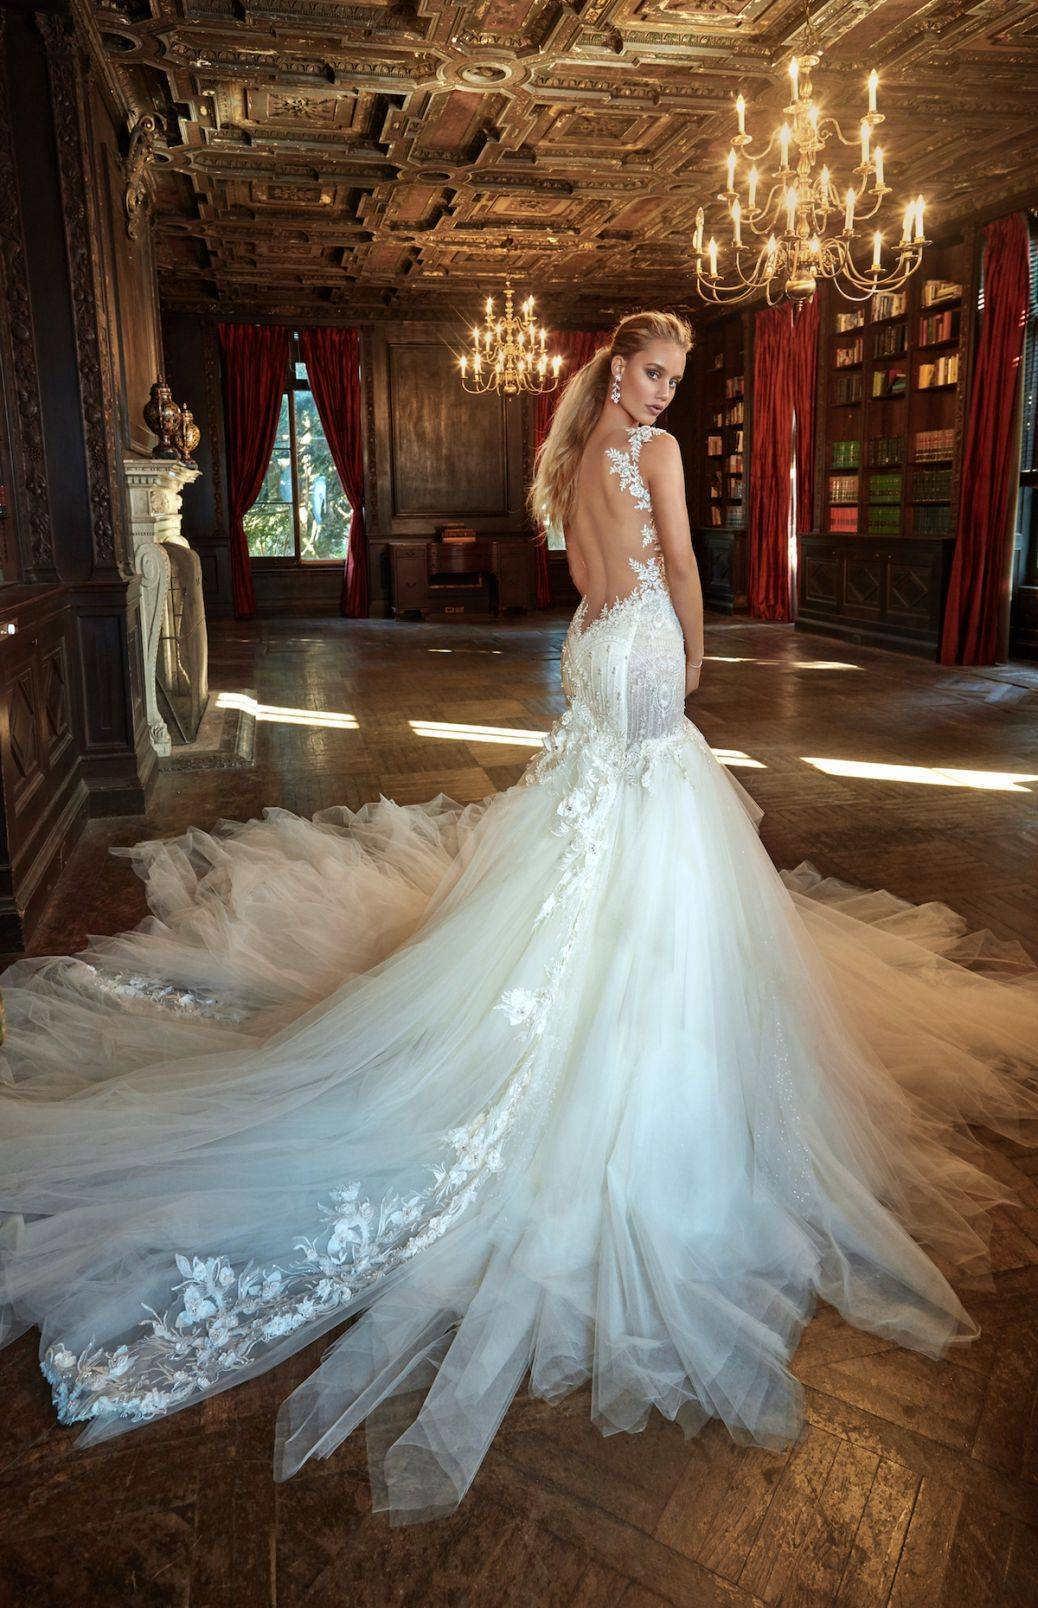 Suzanne - Abundant layers of fluffy tulle in a mermaid skirt with pretty detailing and a gorgeous dropped back